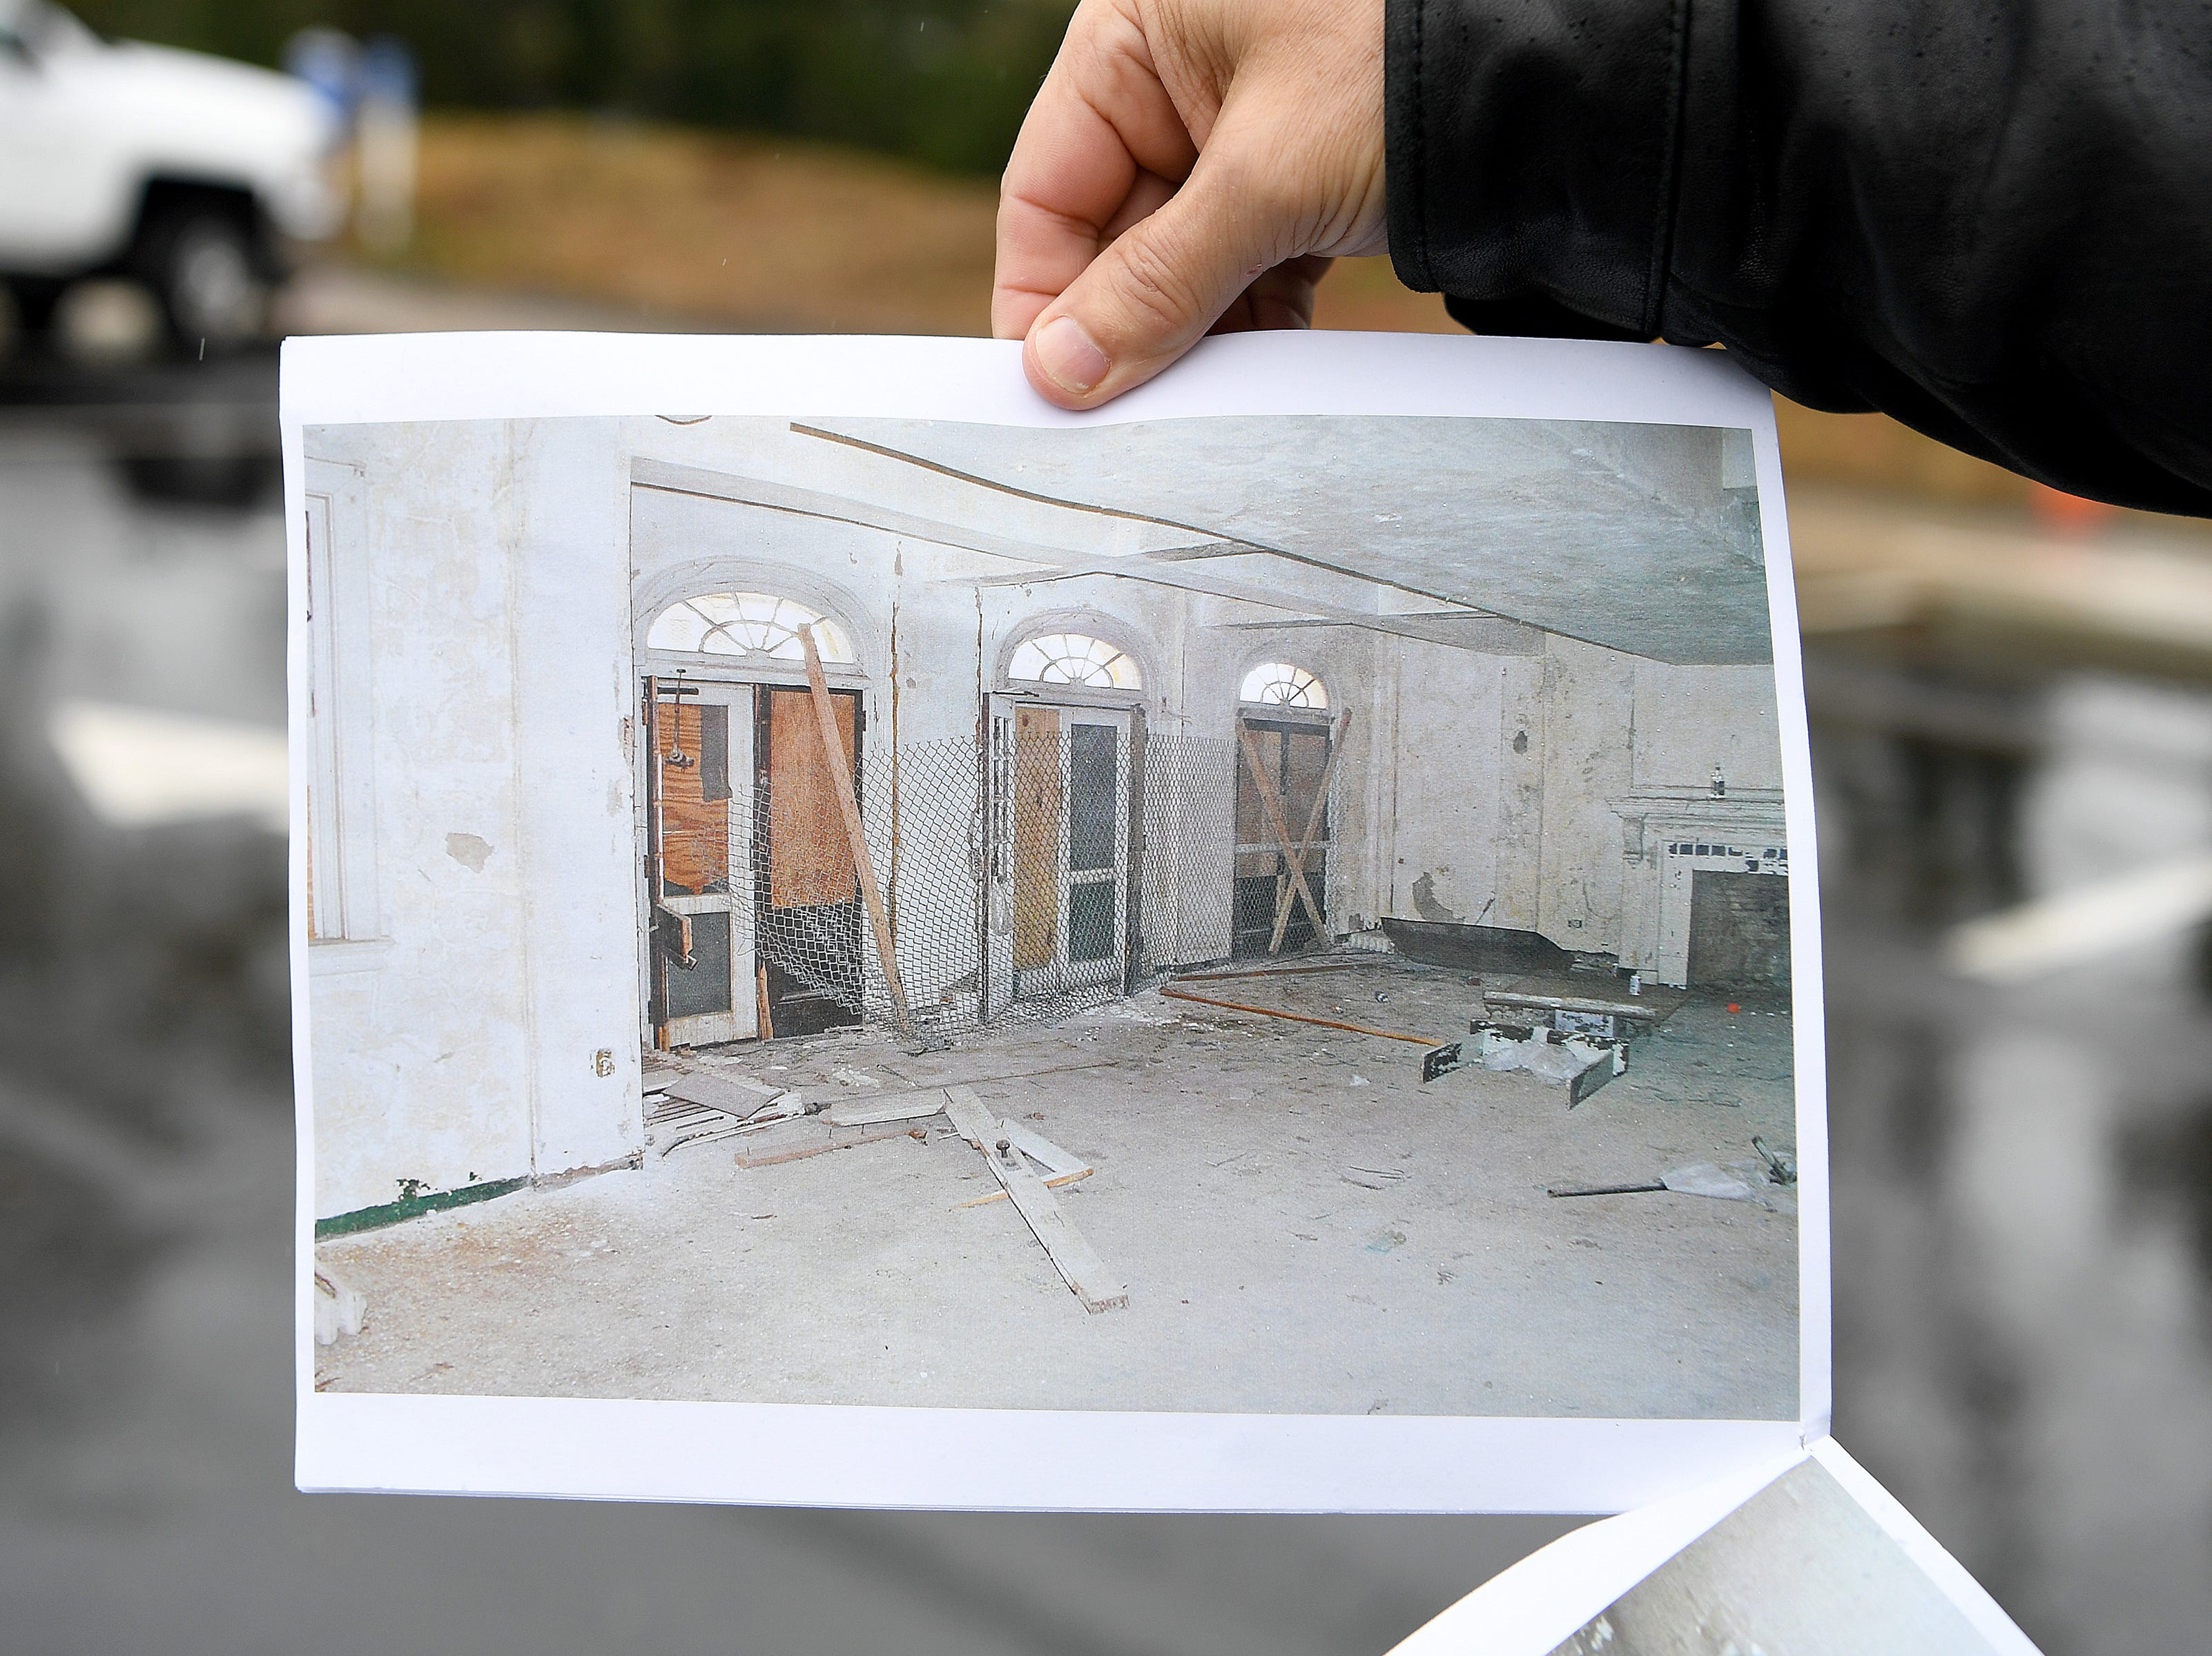 Photographs show the Veterans Hope and Recovery Center on the campus of the Charles George VA Medical Center before it was restored and reopened in a ceremony on Oct. 26, 2018. The building was originally opened in the 1930s as a dormitory for nurses working on the campus and was later condemned after falling into a state of disrepair.